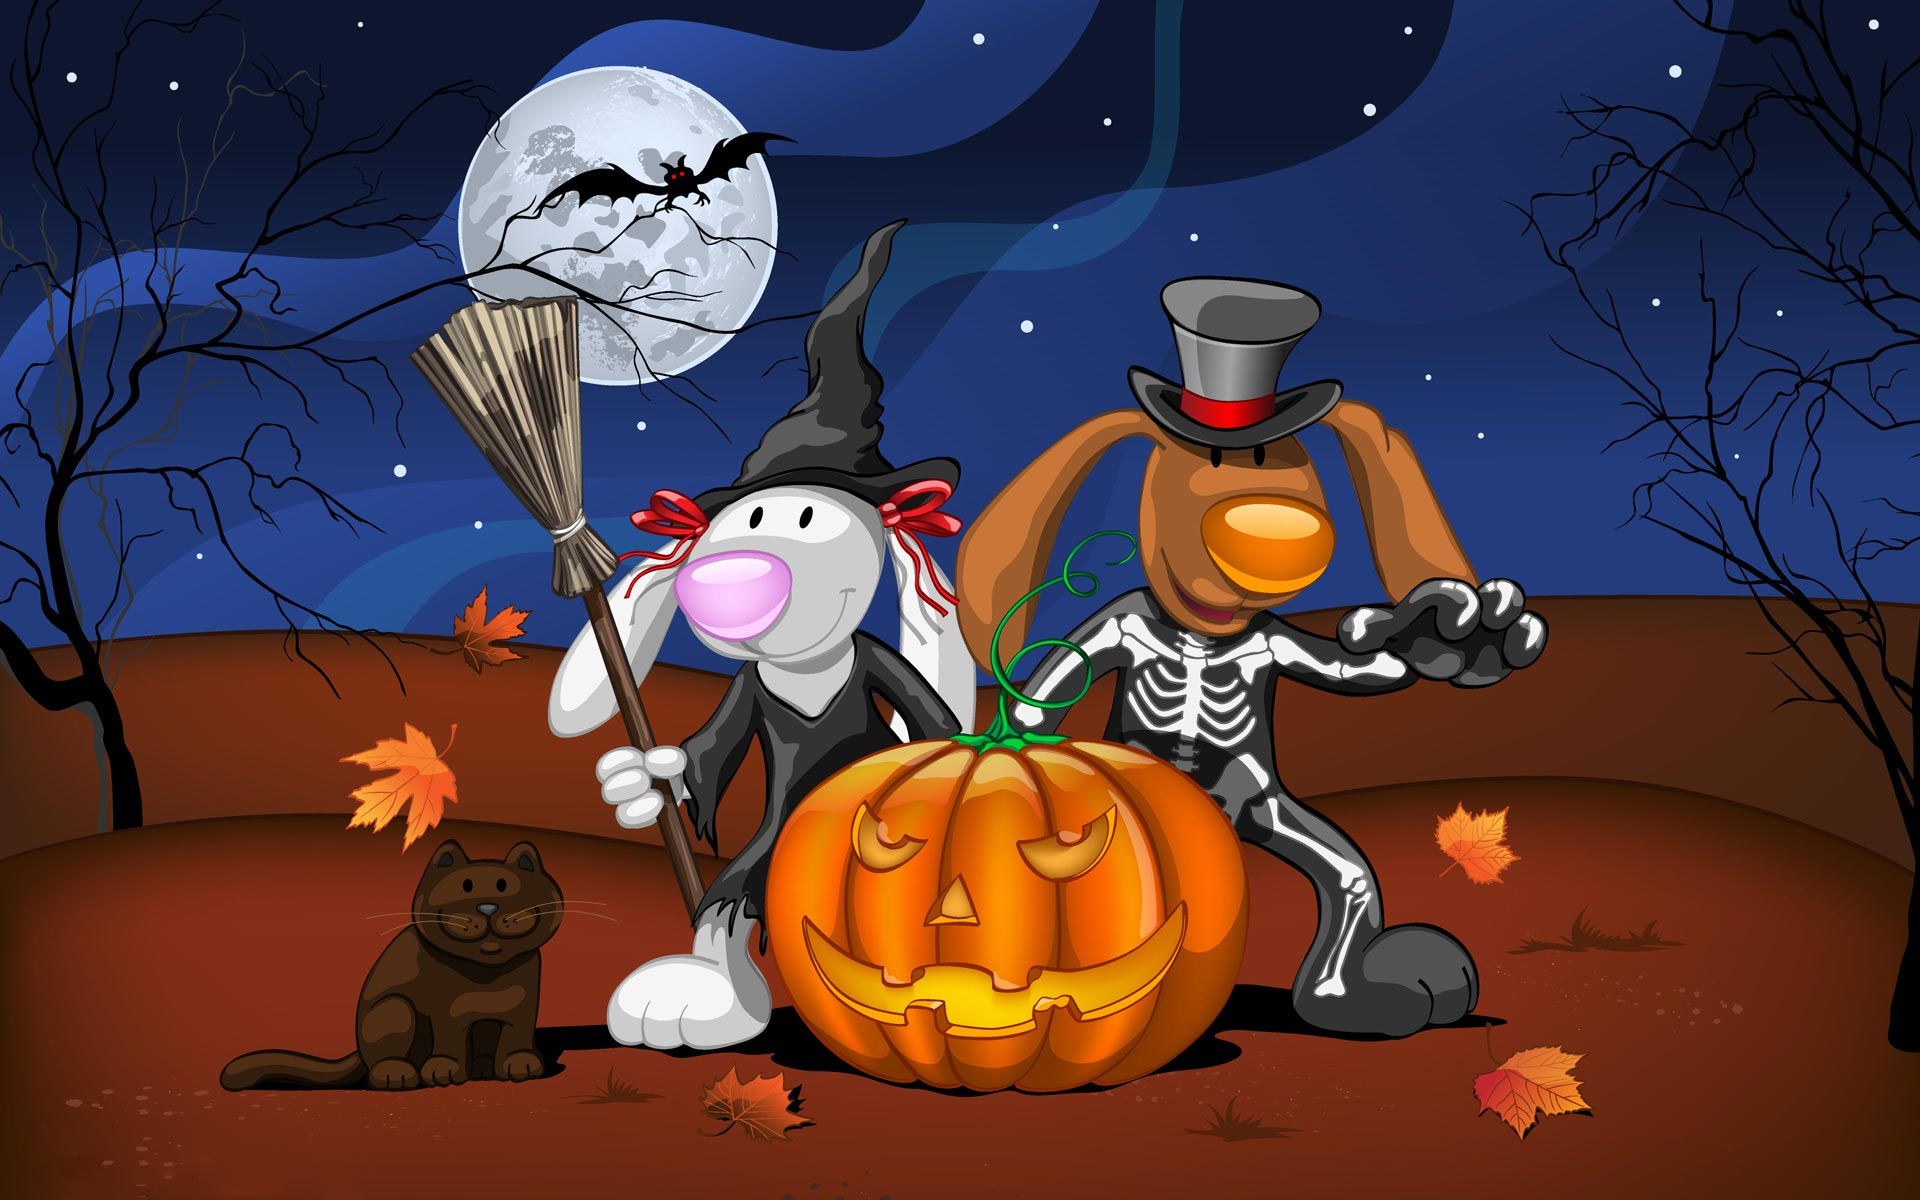 Widescreen HD Wallpaper Holiday Disney Halloween hd wallpaper 1920x1200